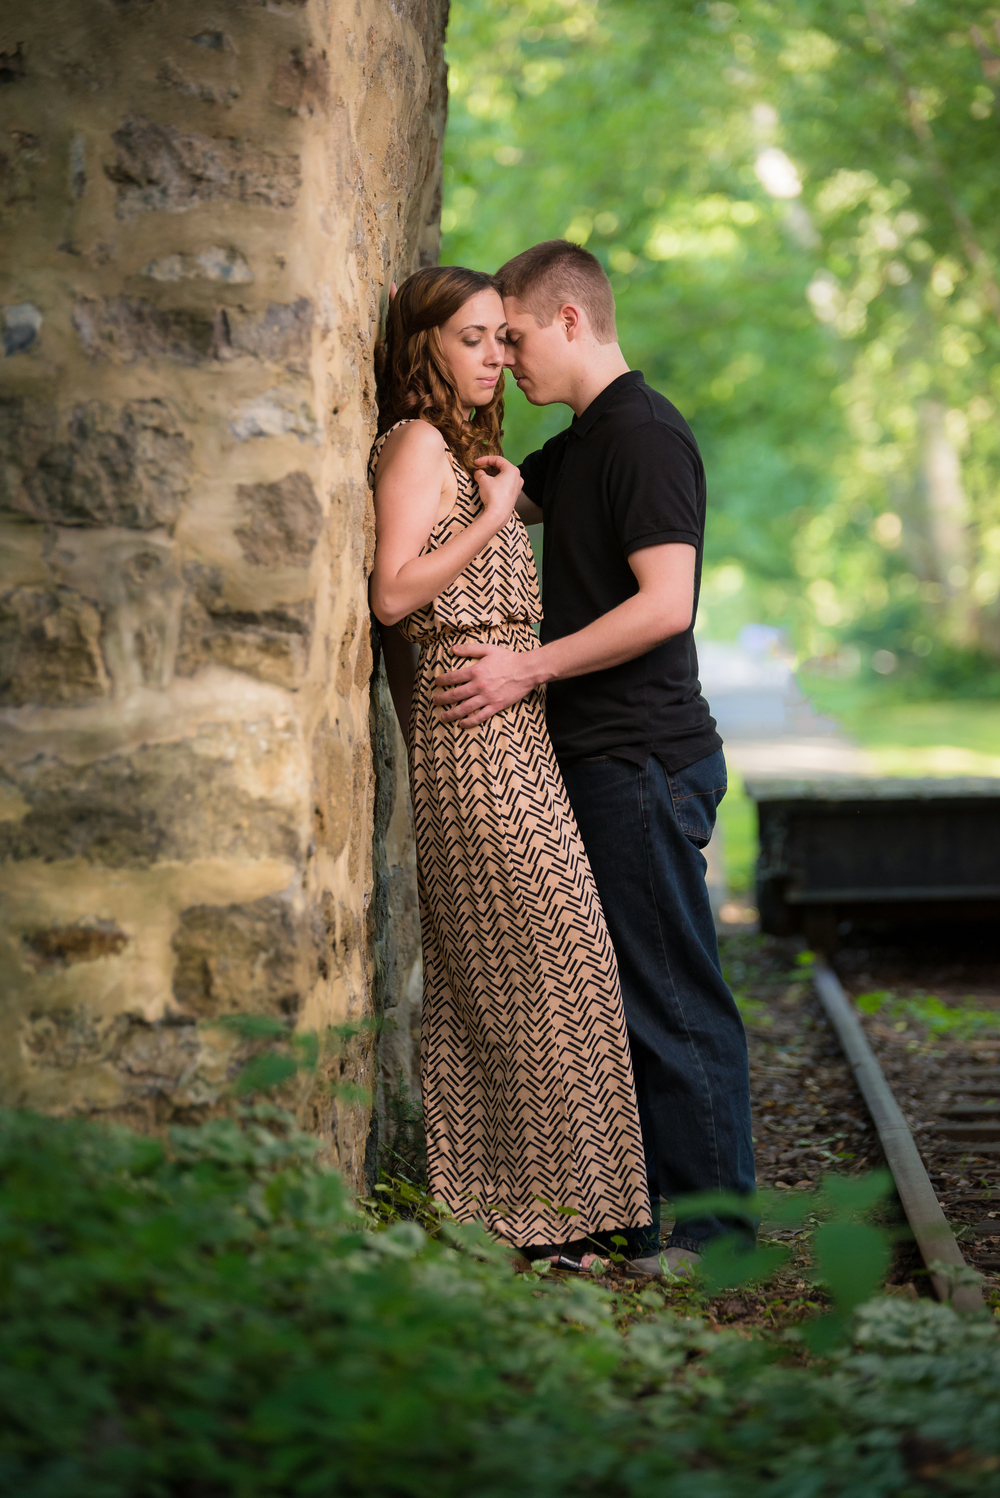 Laura-Jon-Engagement-Garcia-Photography-2862.jpg